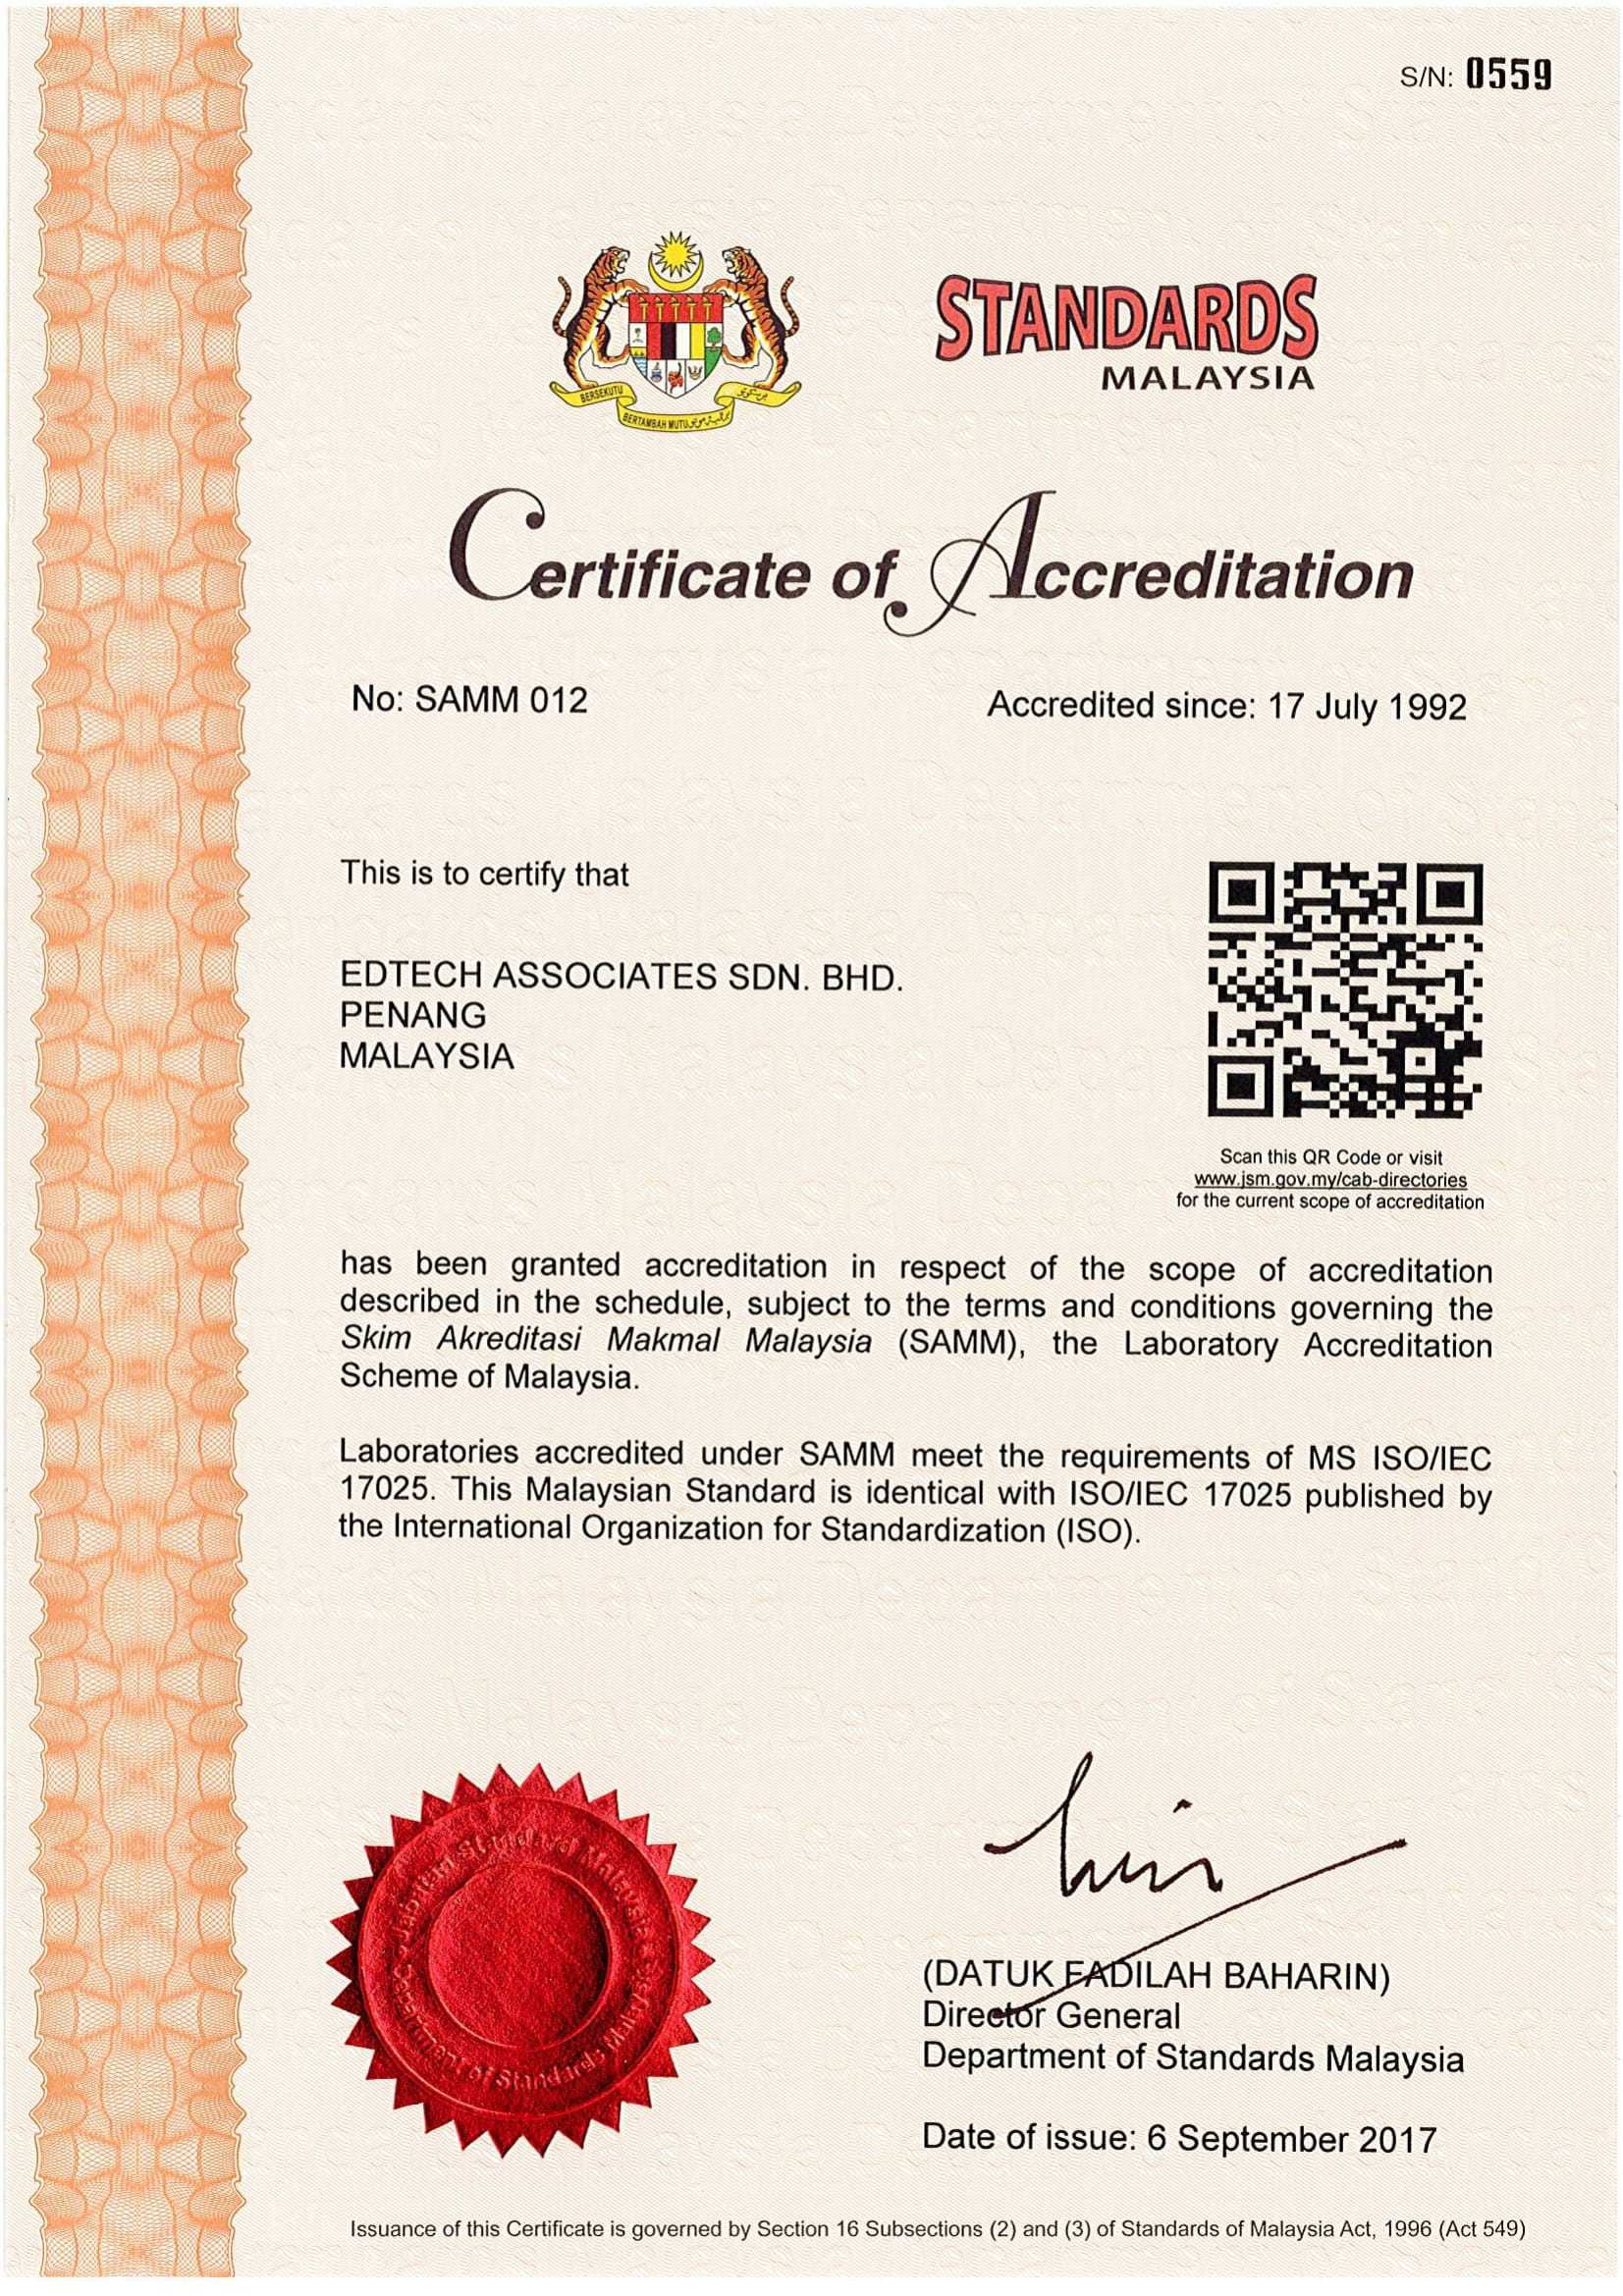 Certificate of Accreditation from